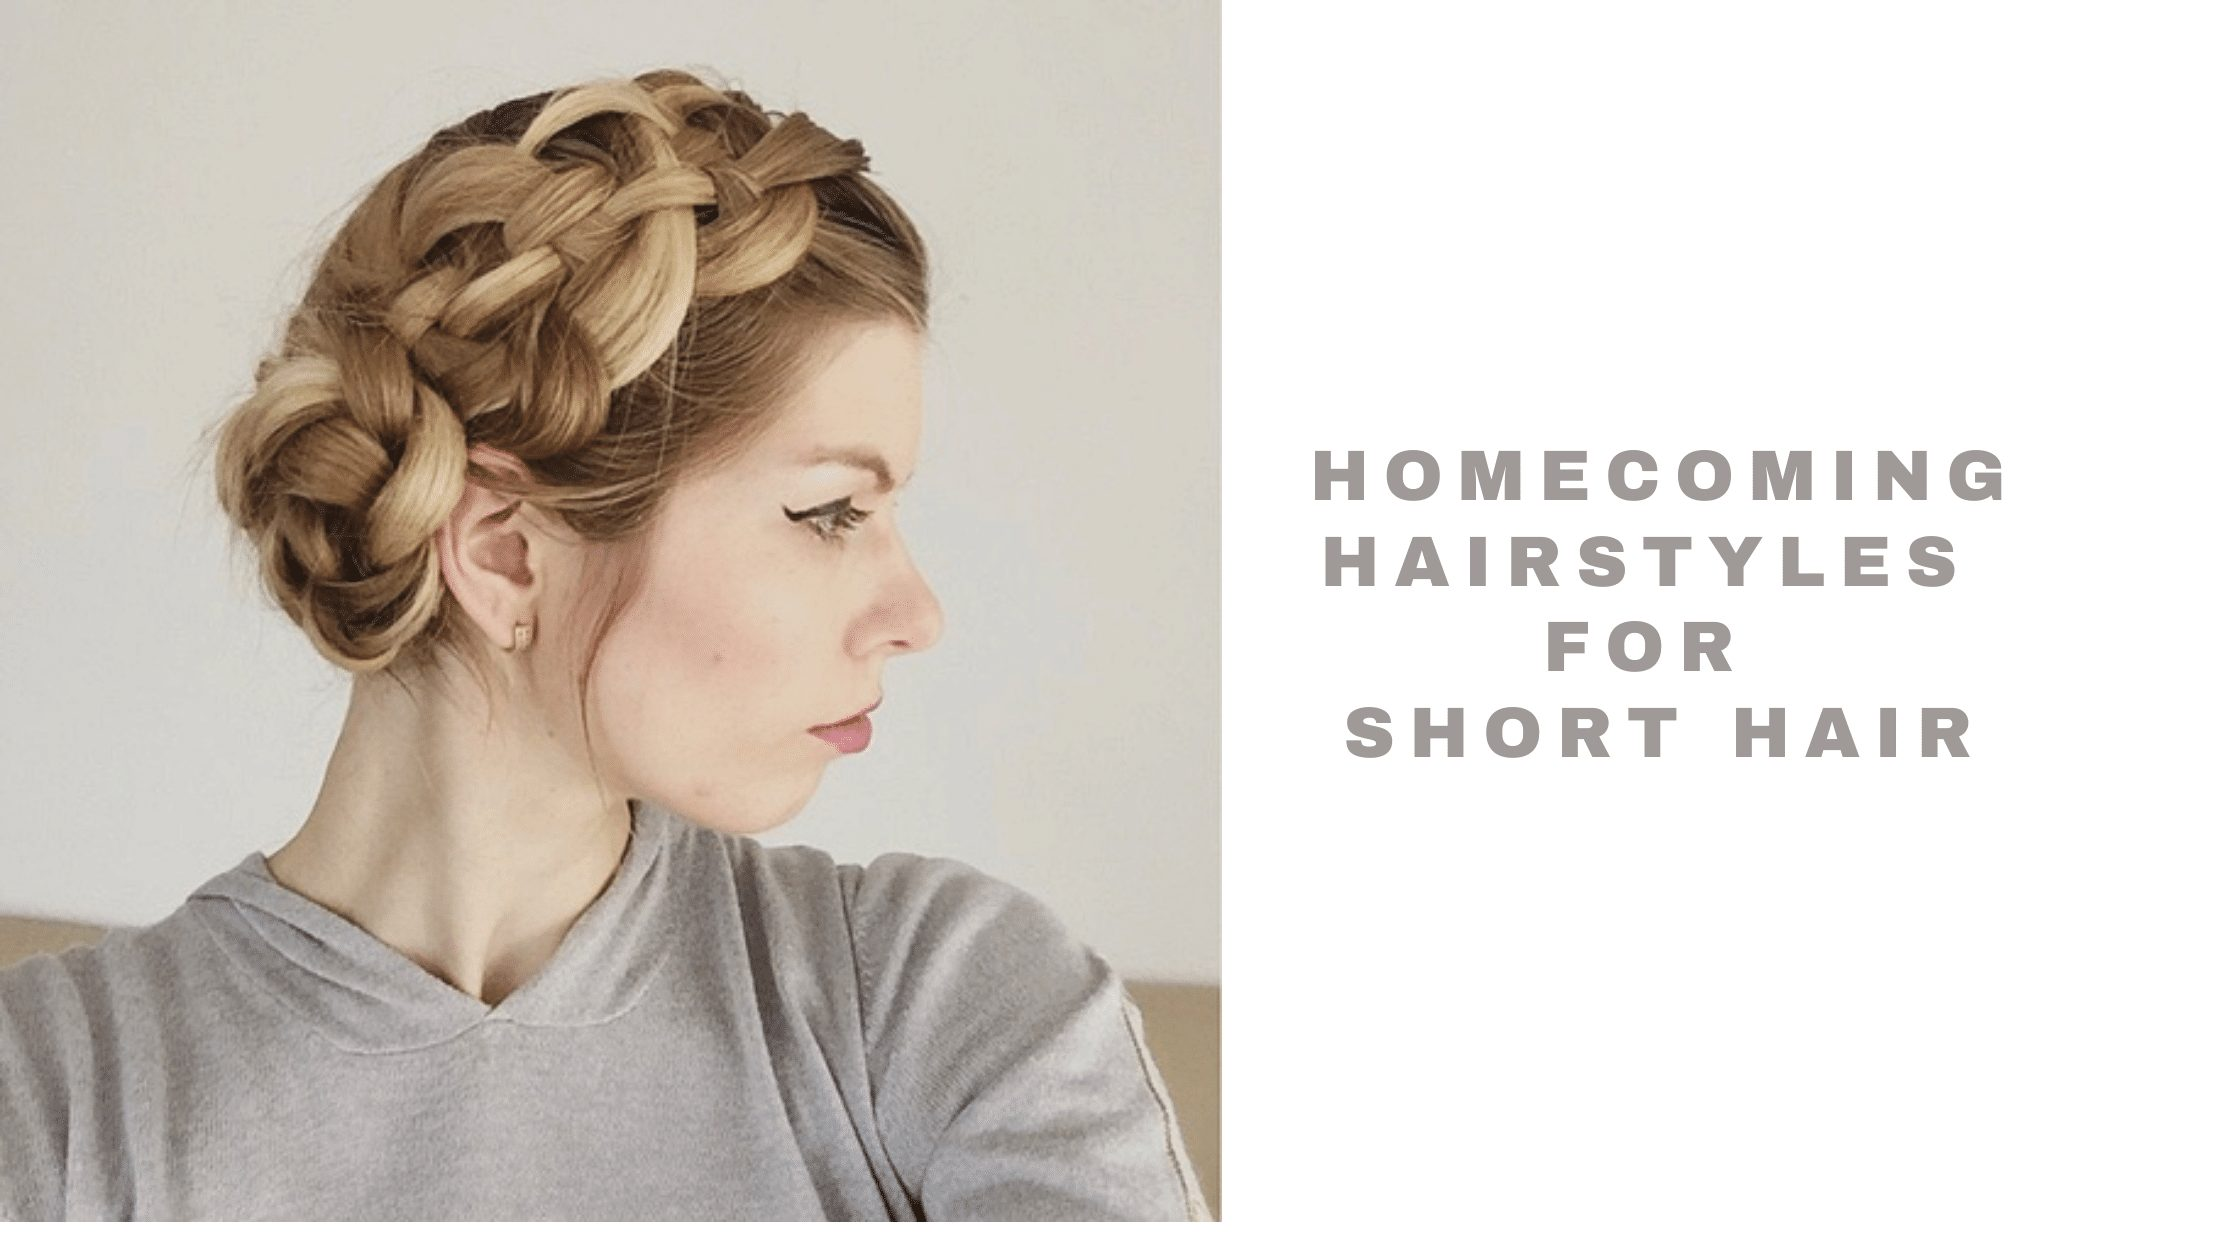 35 Homecoming Hairstyles for Short Hair 2021